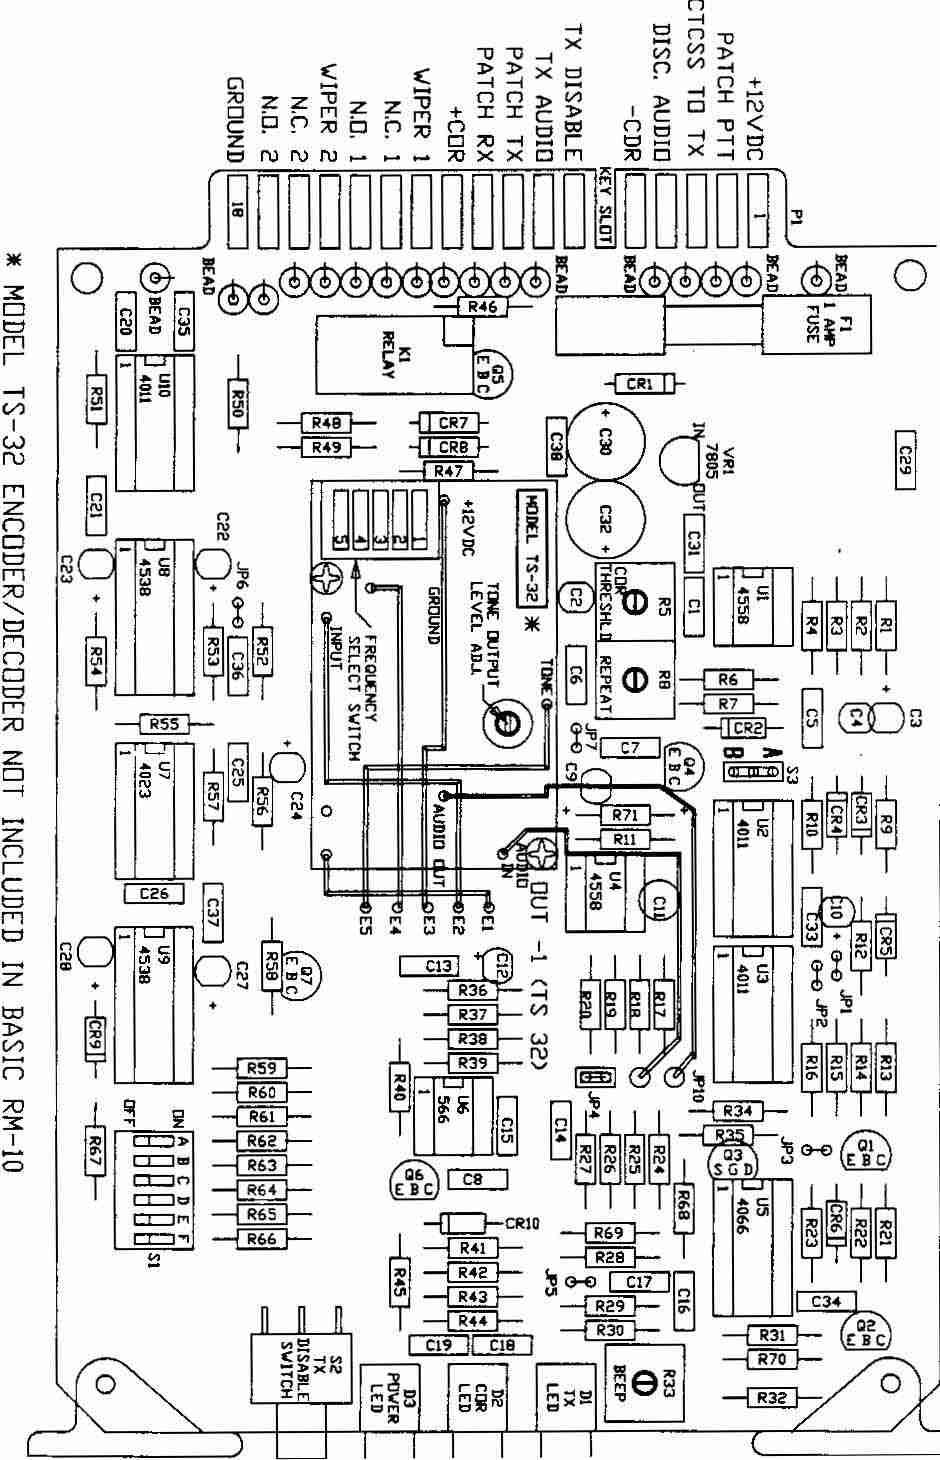 whelen 295hfsa6 wiring diagram review ebooks